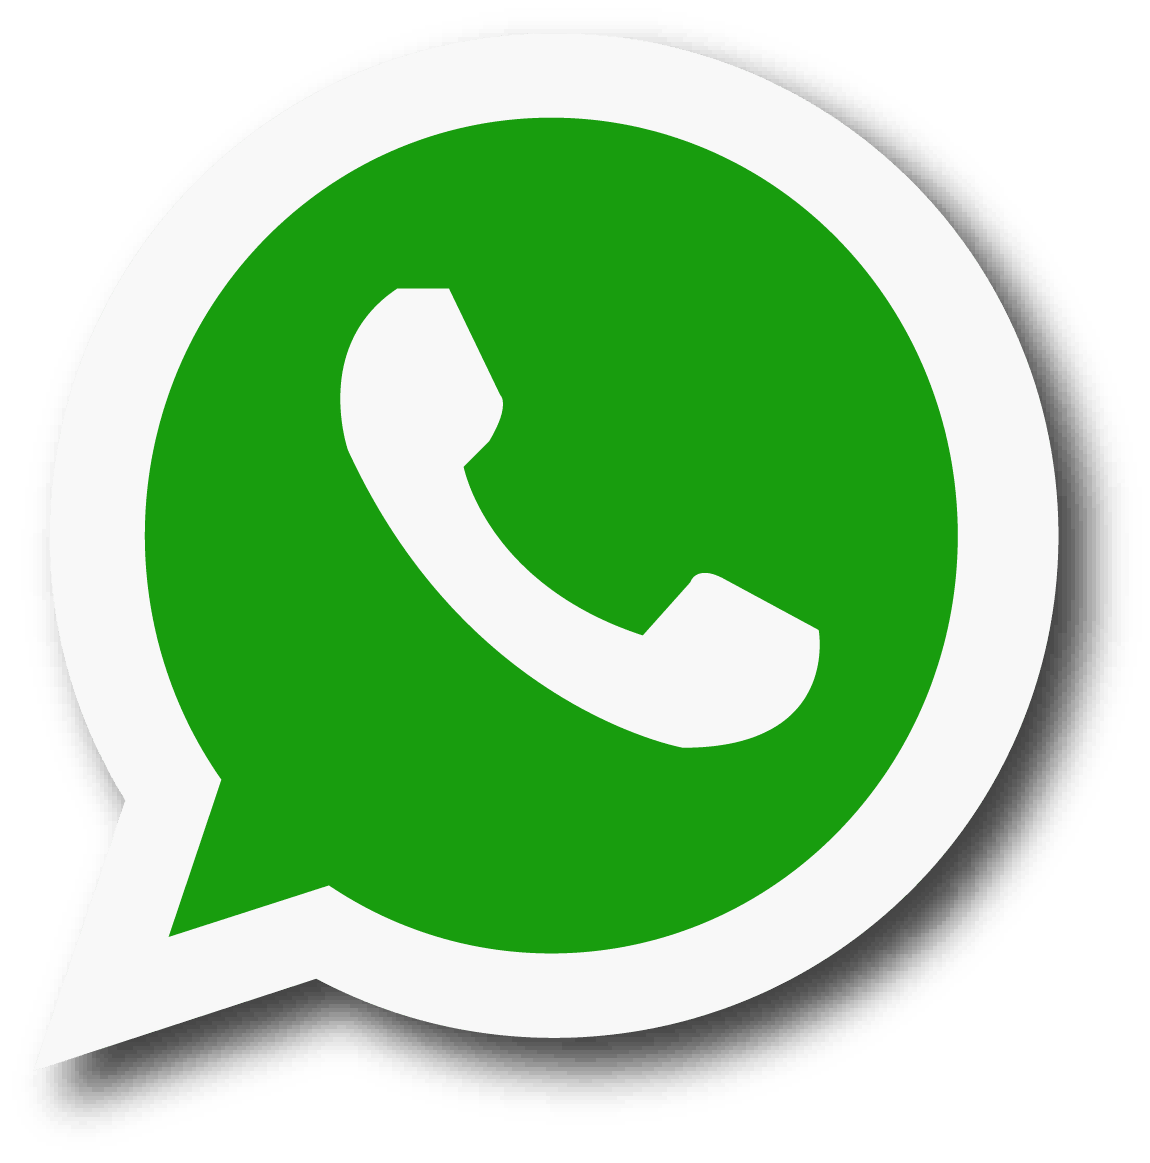 WhatsApp image icon